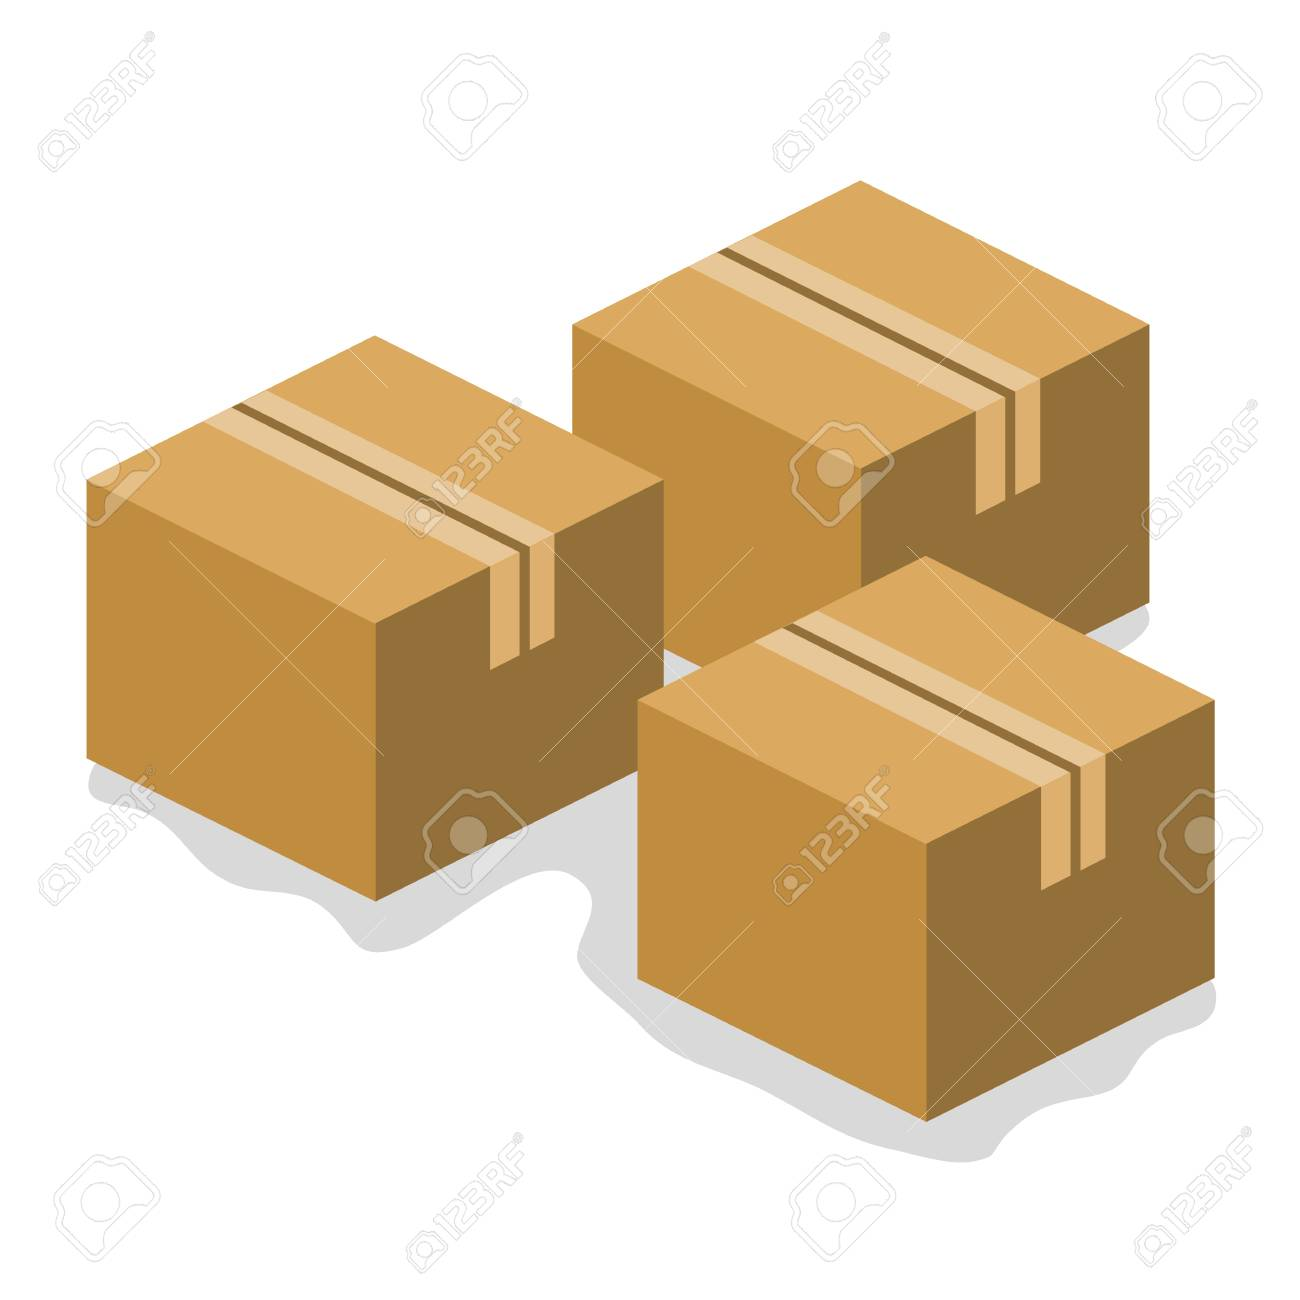 cardboard boxes isolated illustration on white background Stock Vector - 24149710